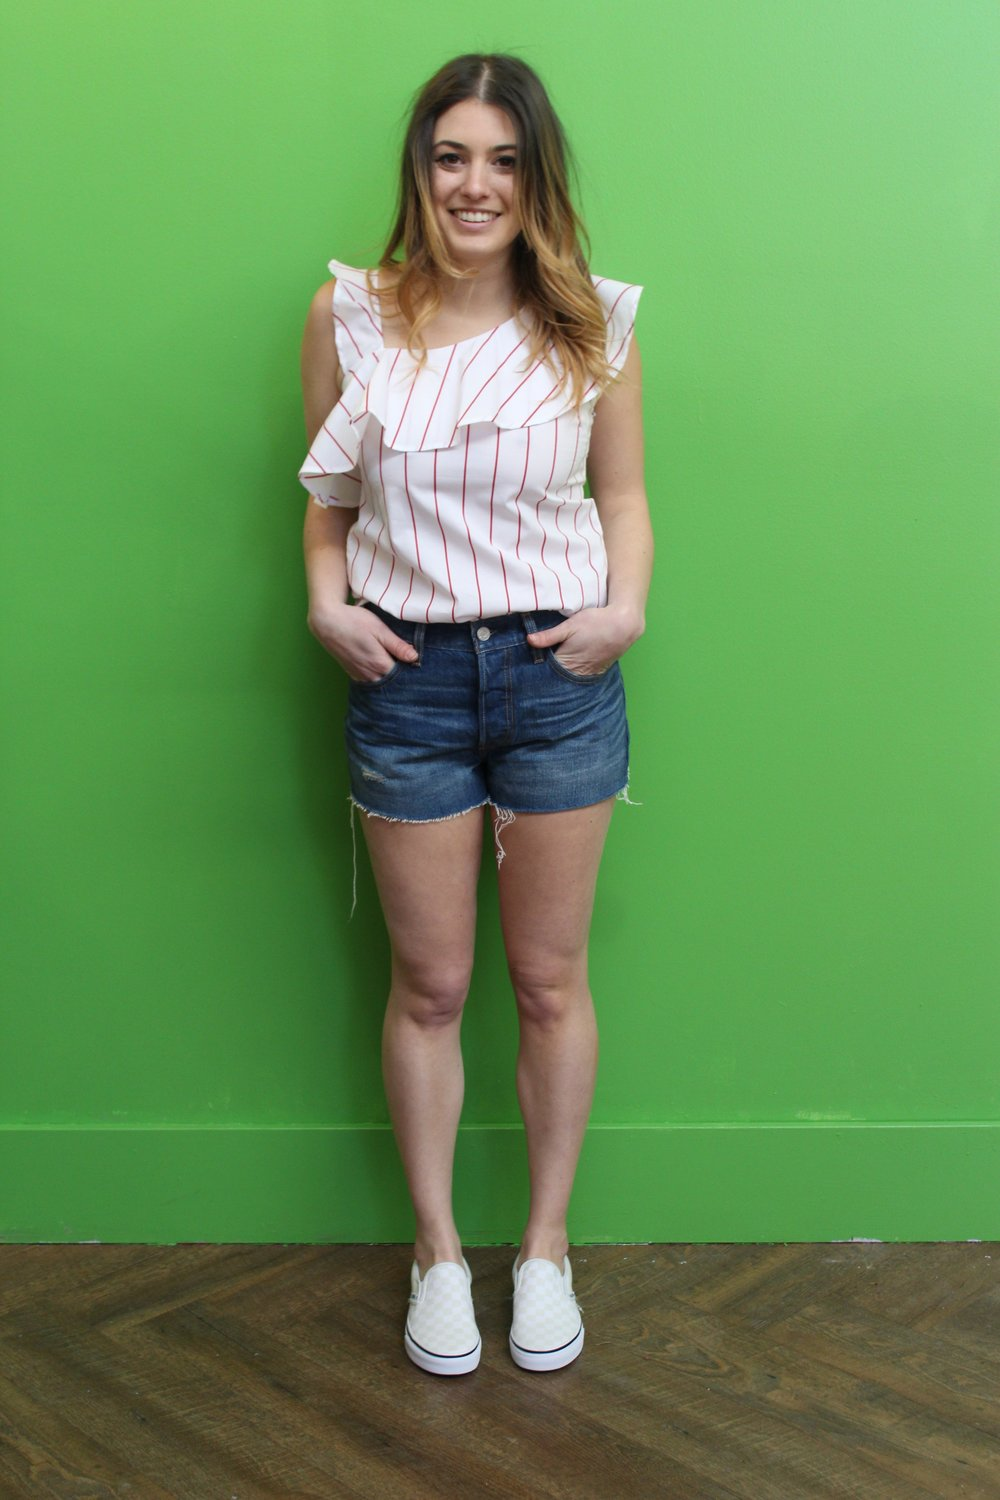 Ecru Striped One Shoulder Top $185 Levi's Shorts $80 Vans Checkerboard Slide Ons $60